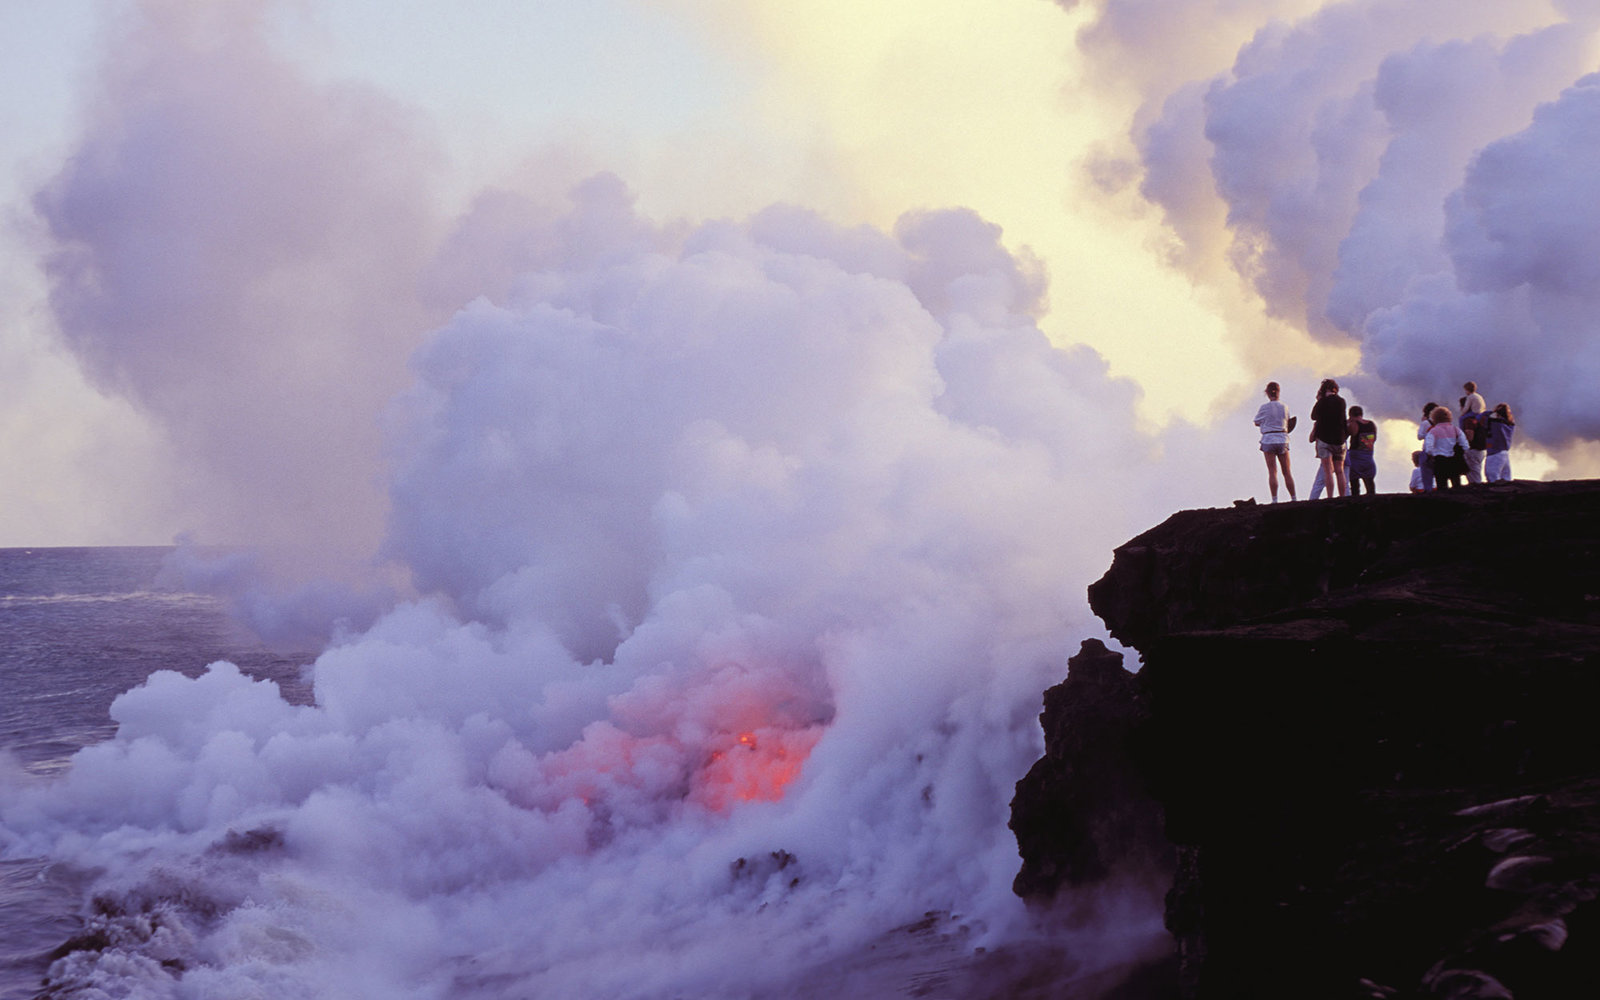 Hawaii, Big Island, Wahaula, People watching lava flow into ocean